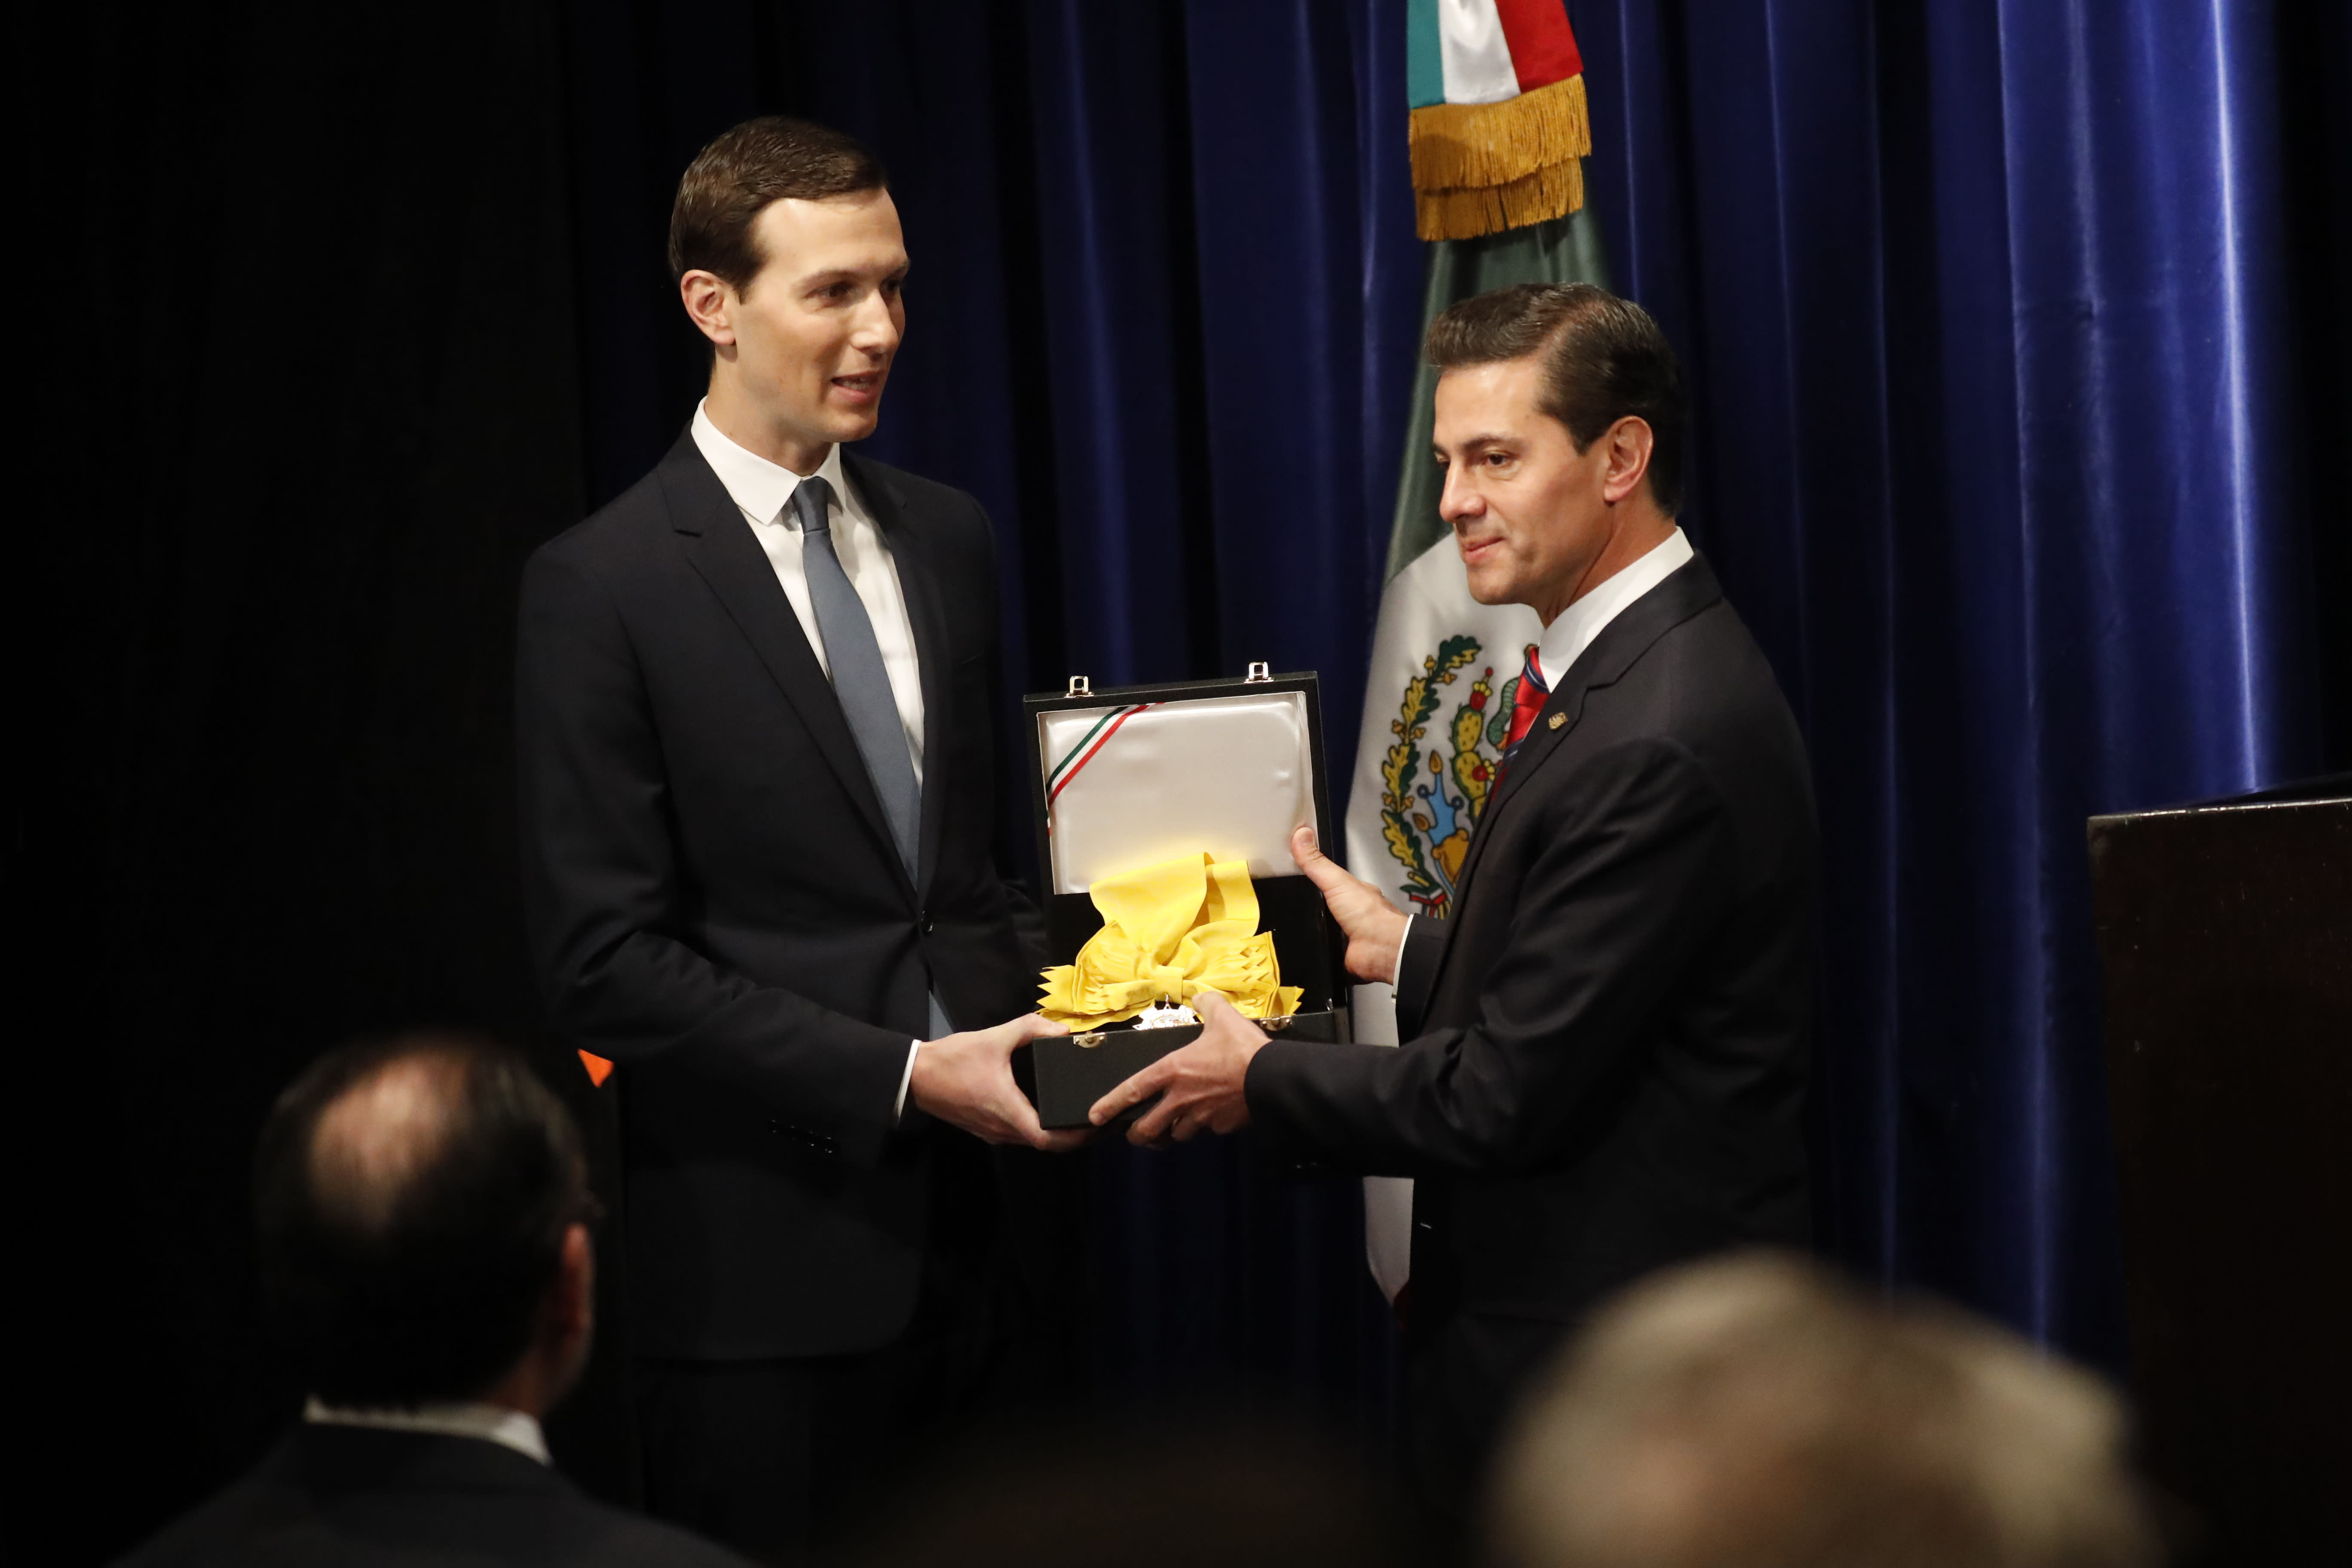 Spelling Of Honor: Mexico Bestows Highest Honor On Trump Son-in-law Kushner